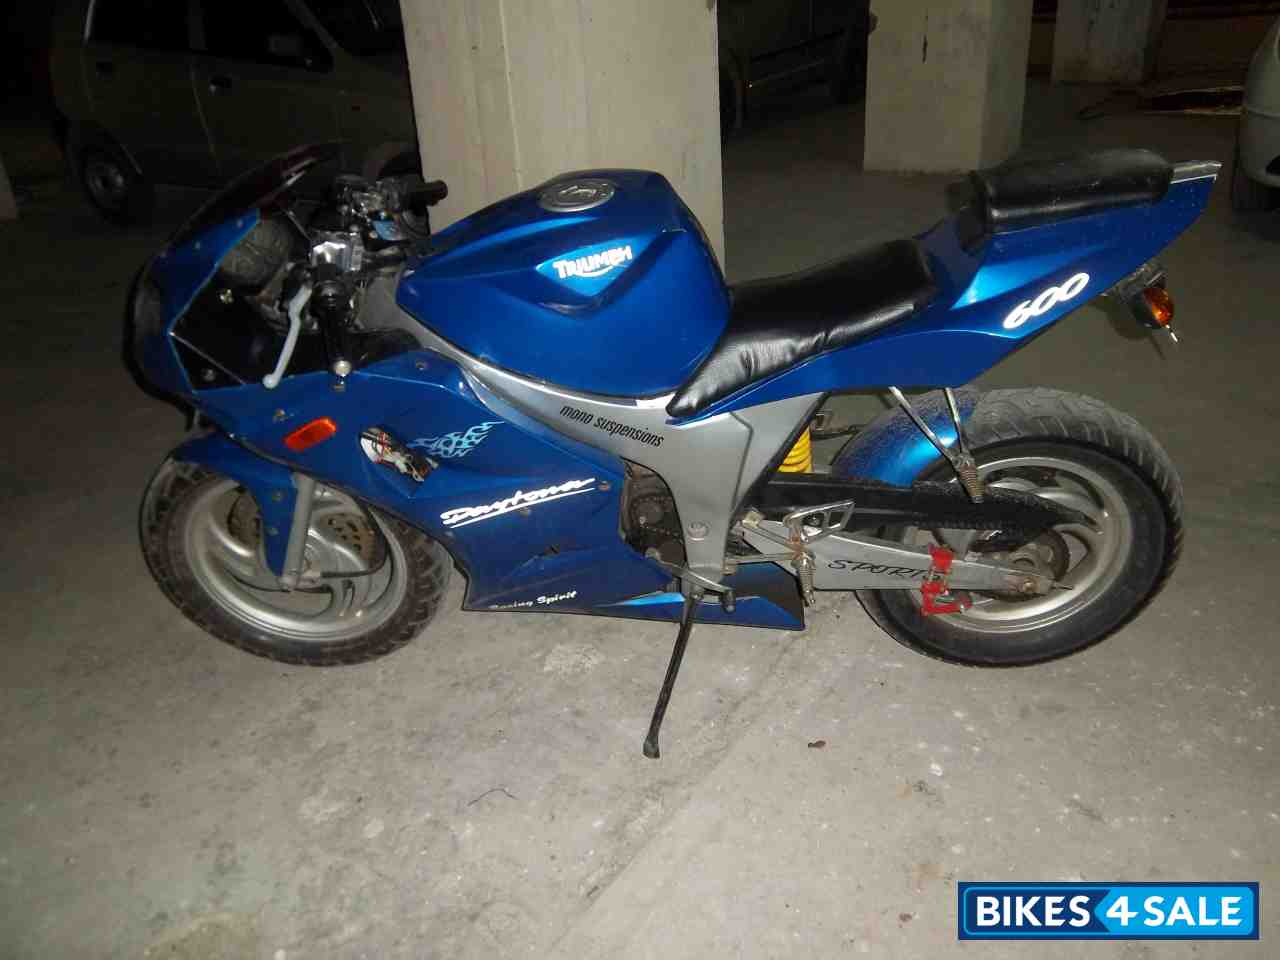 Bikes4sale Used Bikes In Modified Bike Daytona Triumph